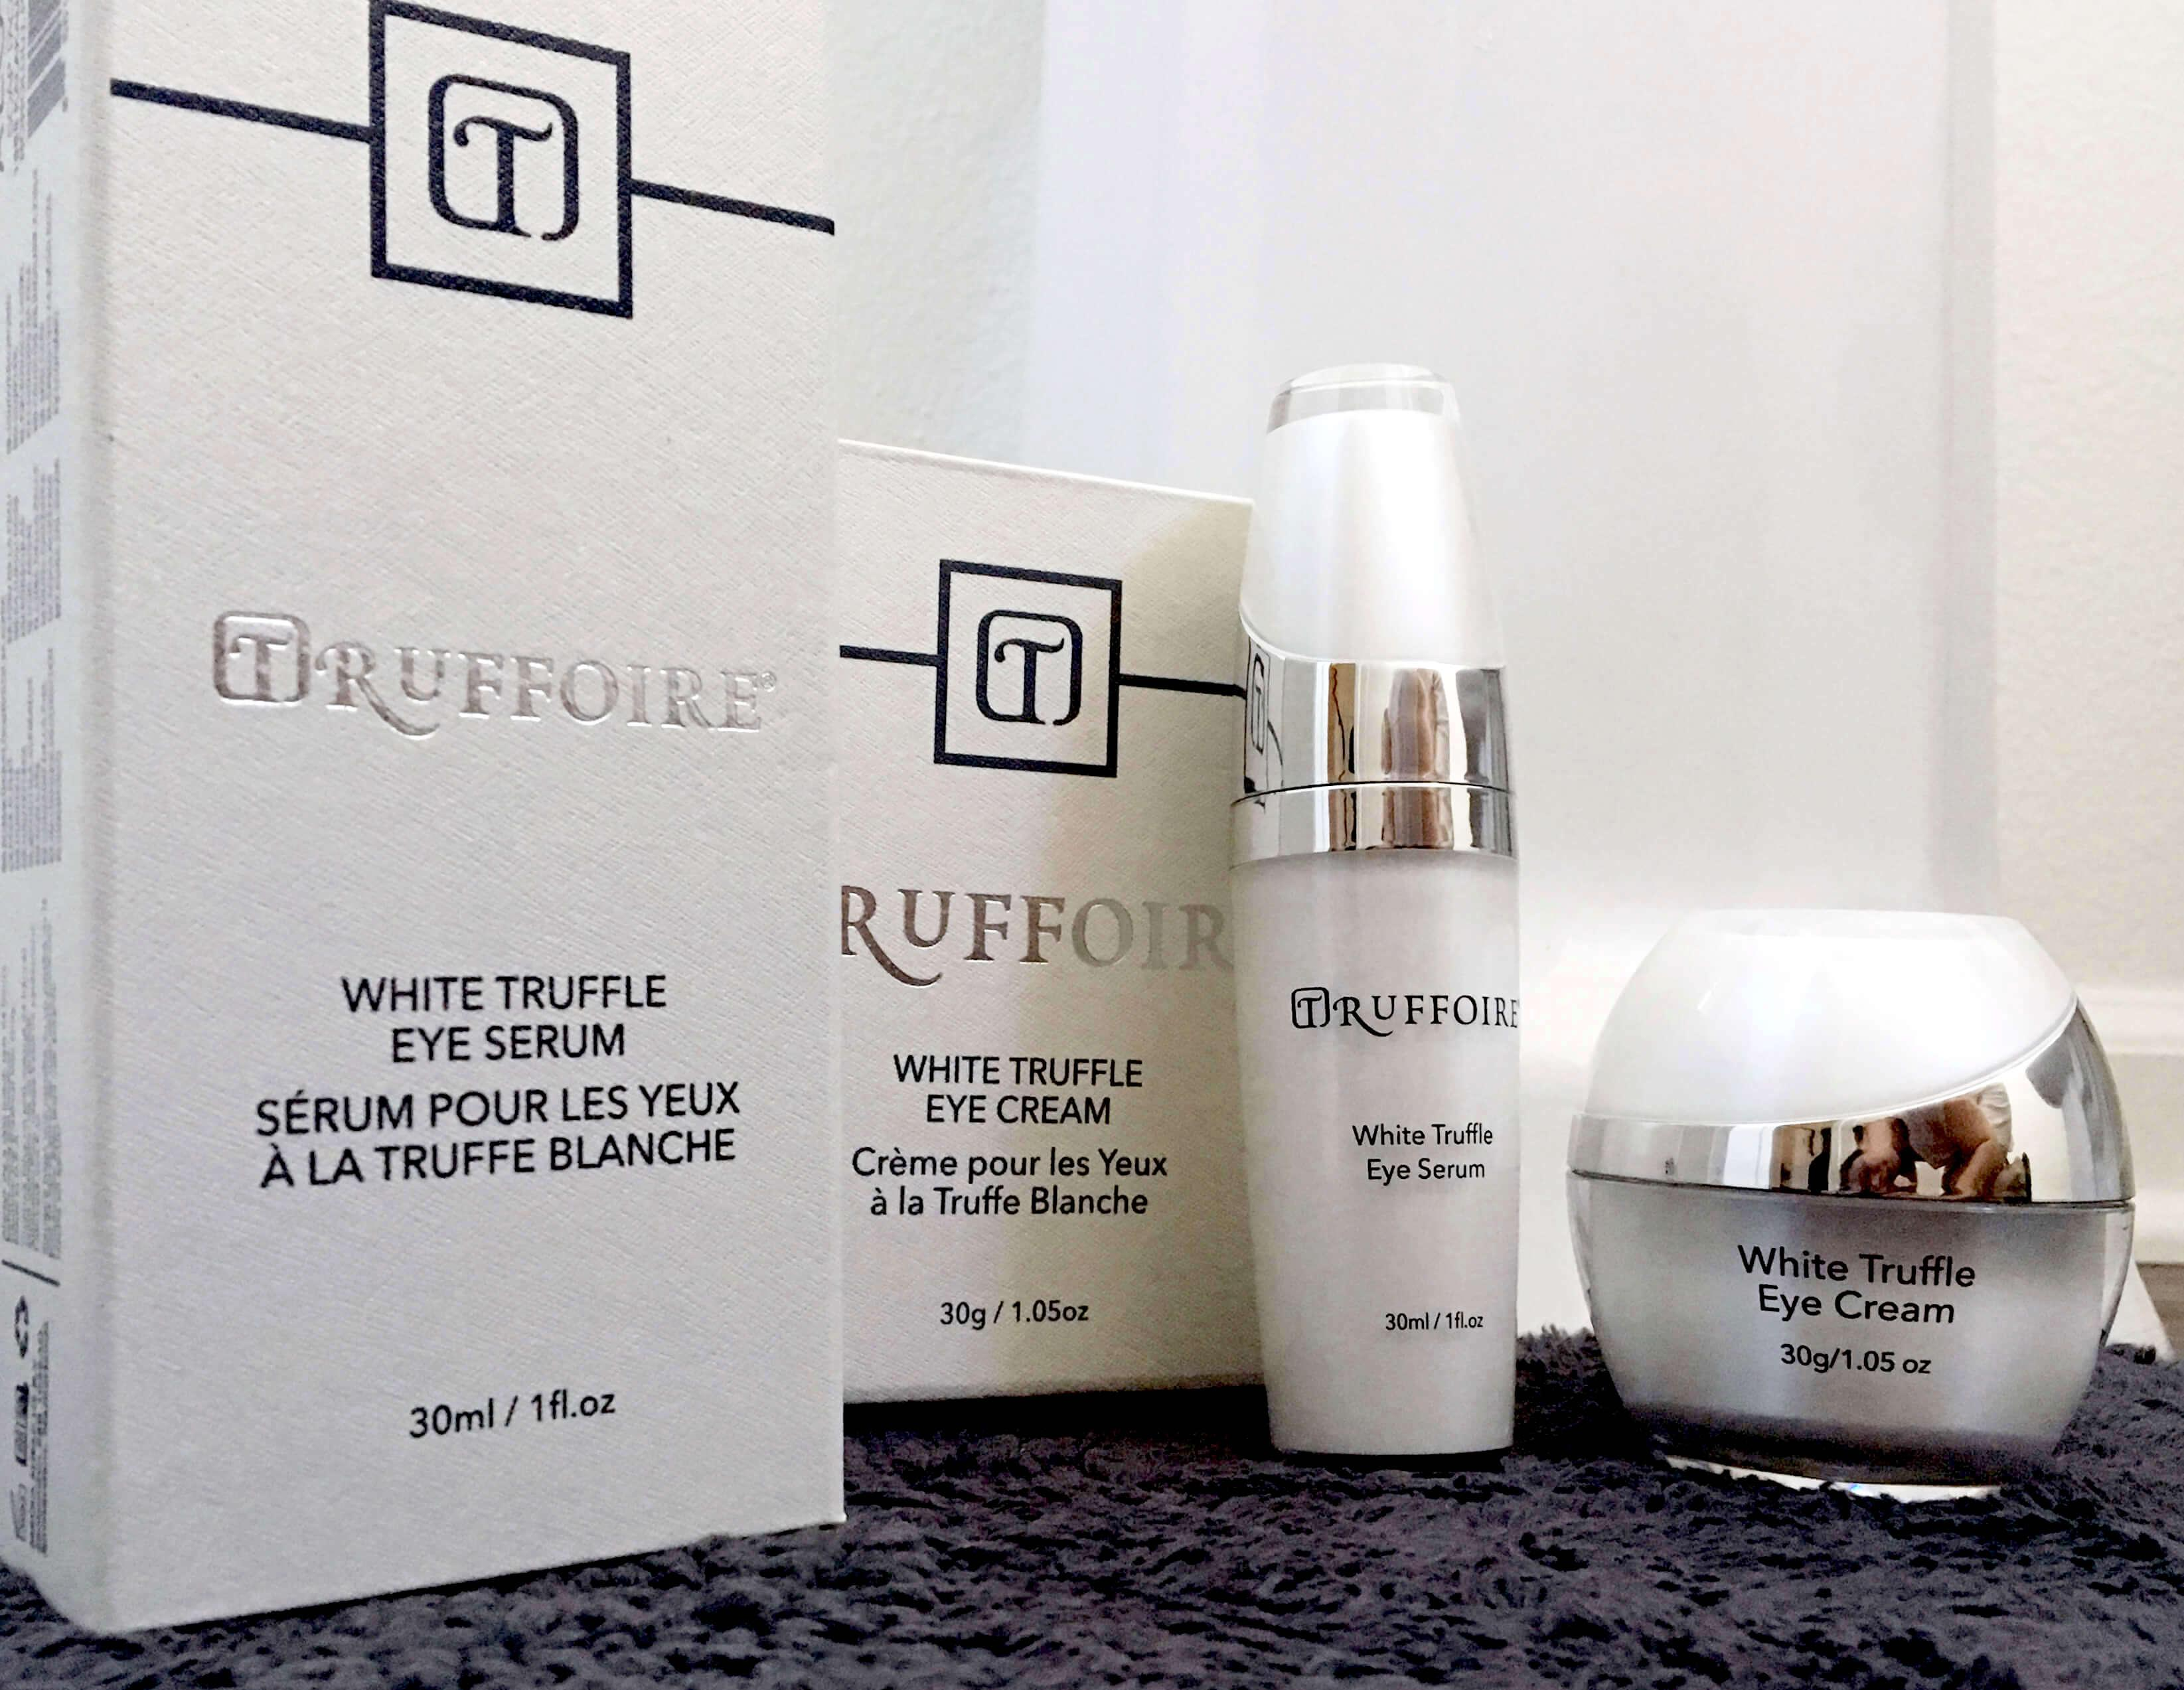 Truffoire White Truffle eye serum and cream.